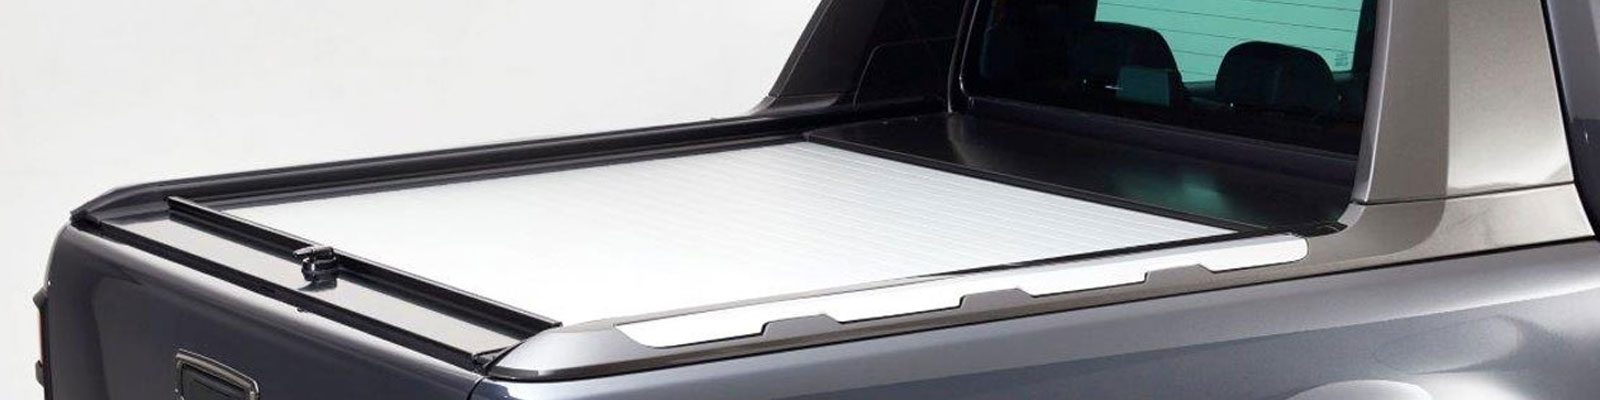 Pro//Top Tonneau Covers